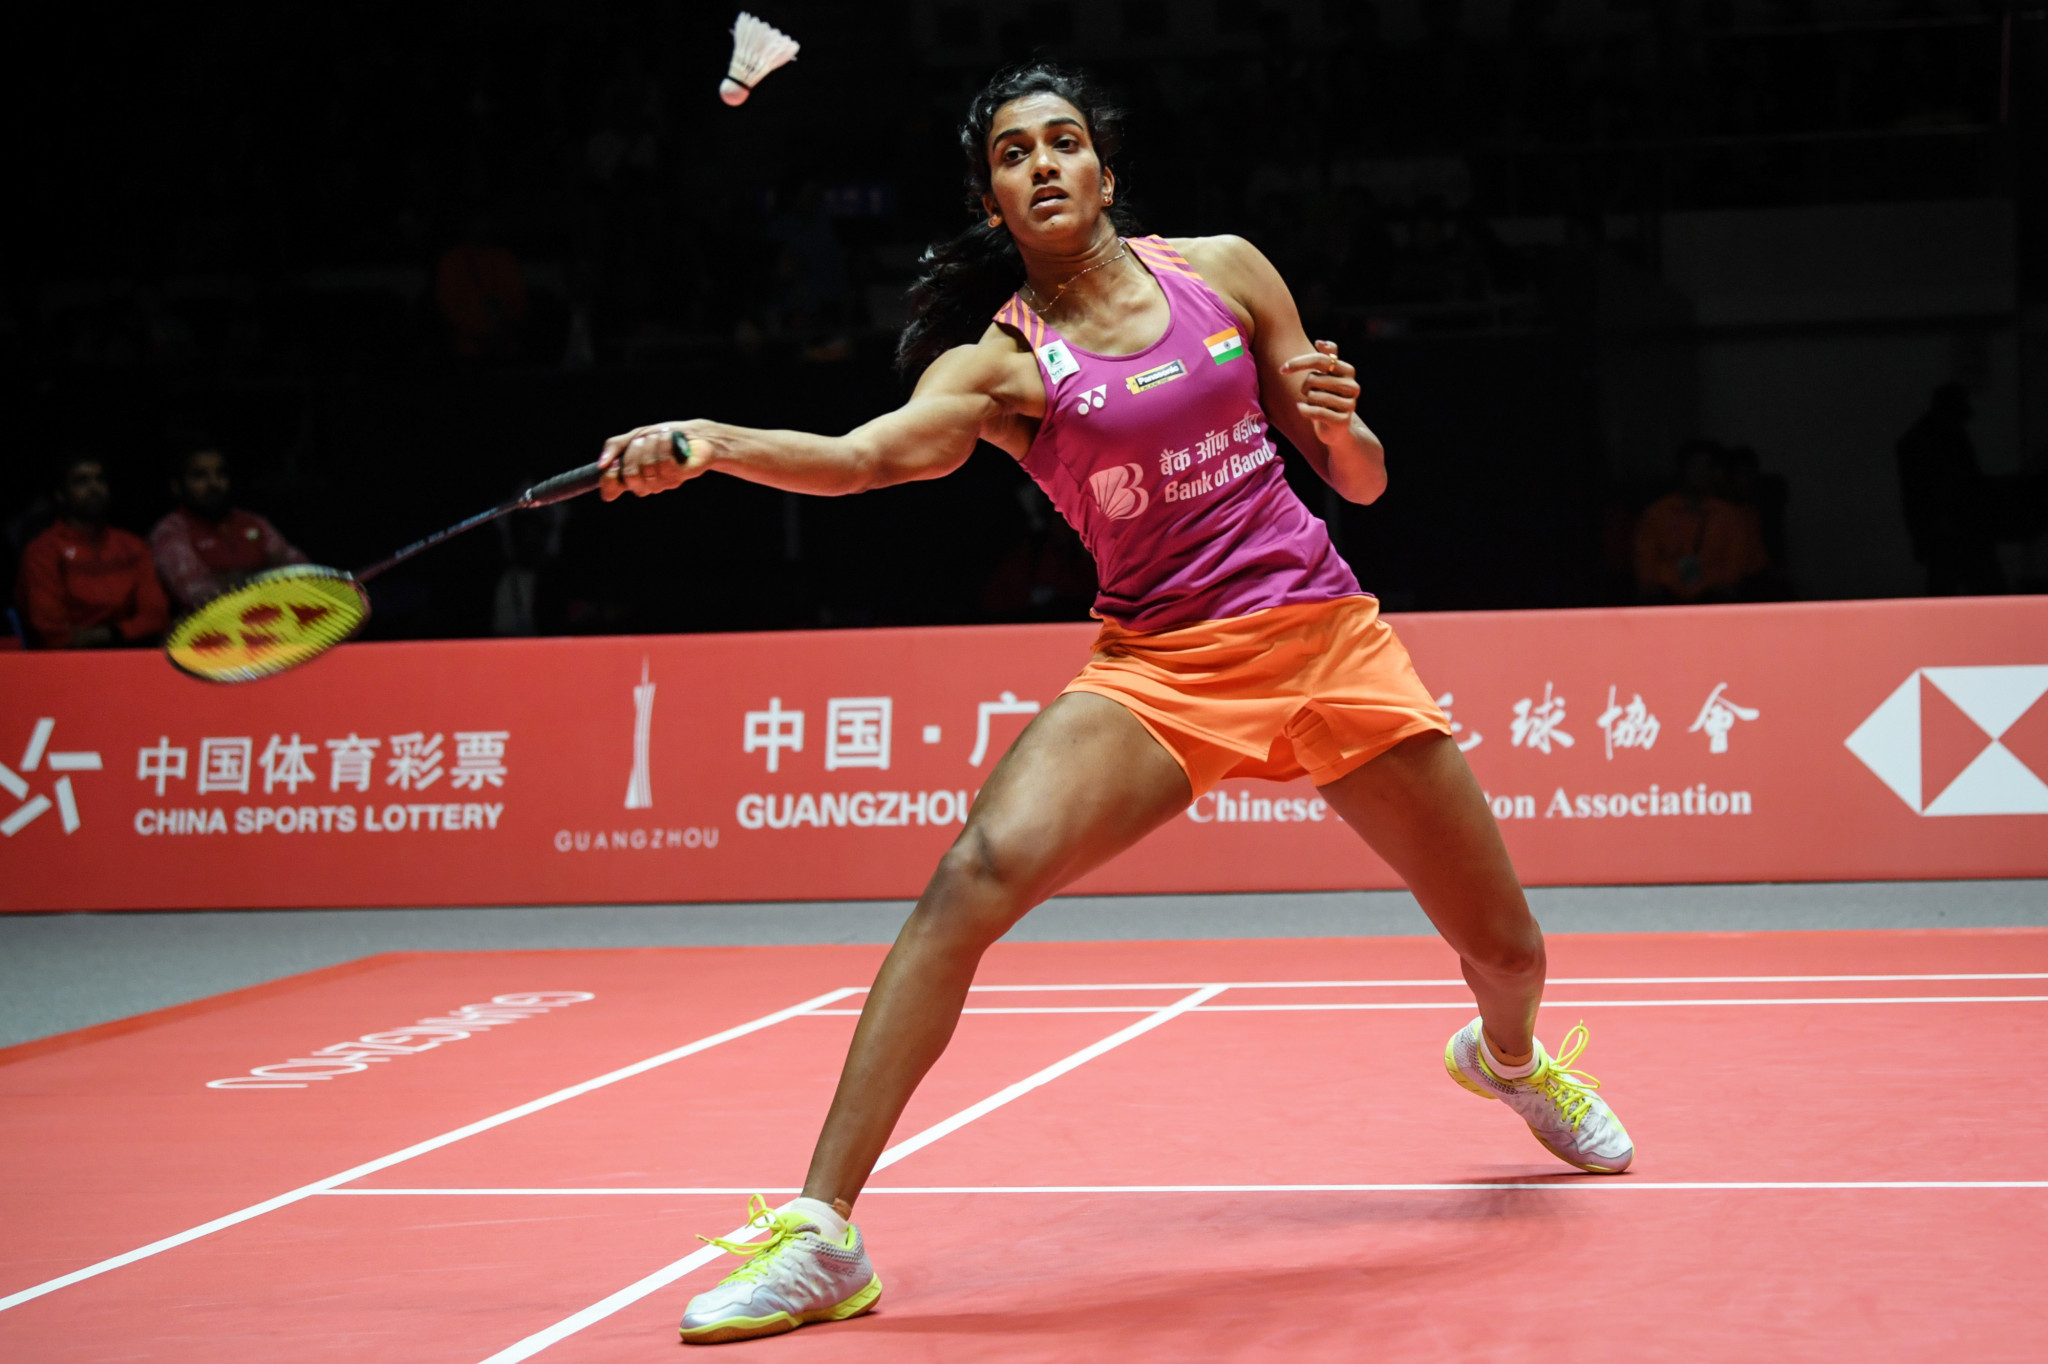 India's Sindu Pusarla, now the top seed in the women's competition, begins her India Open campaign tomorrow ©Getty Images